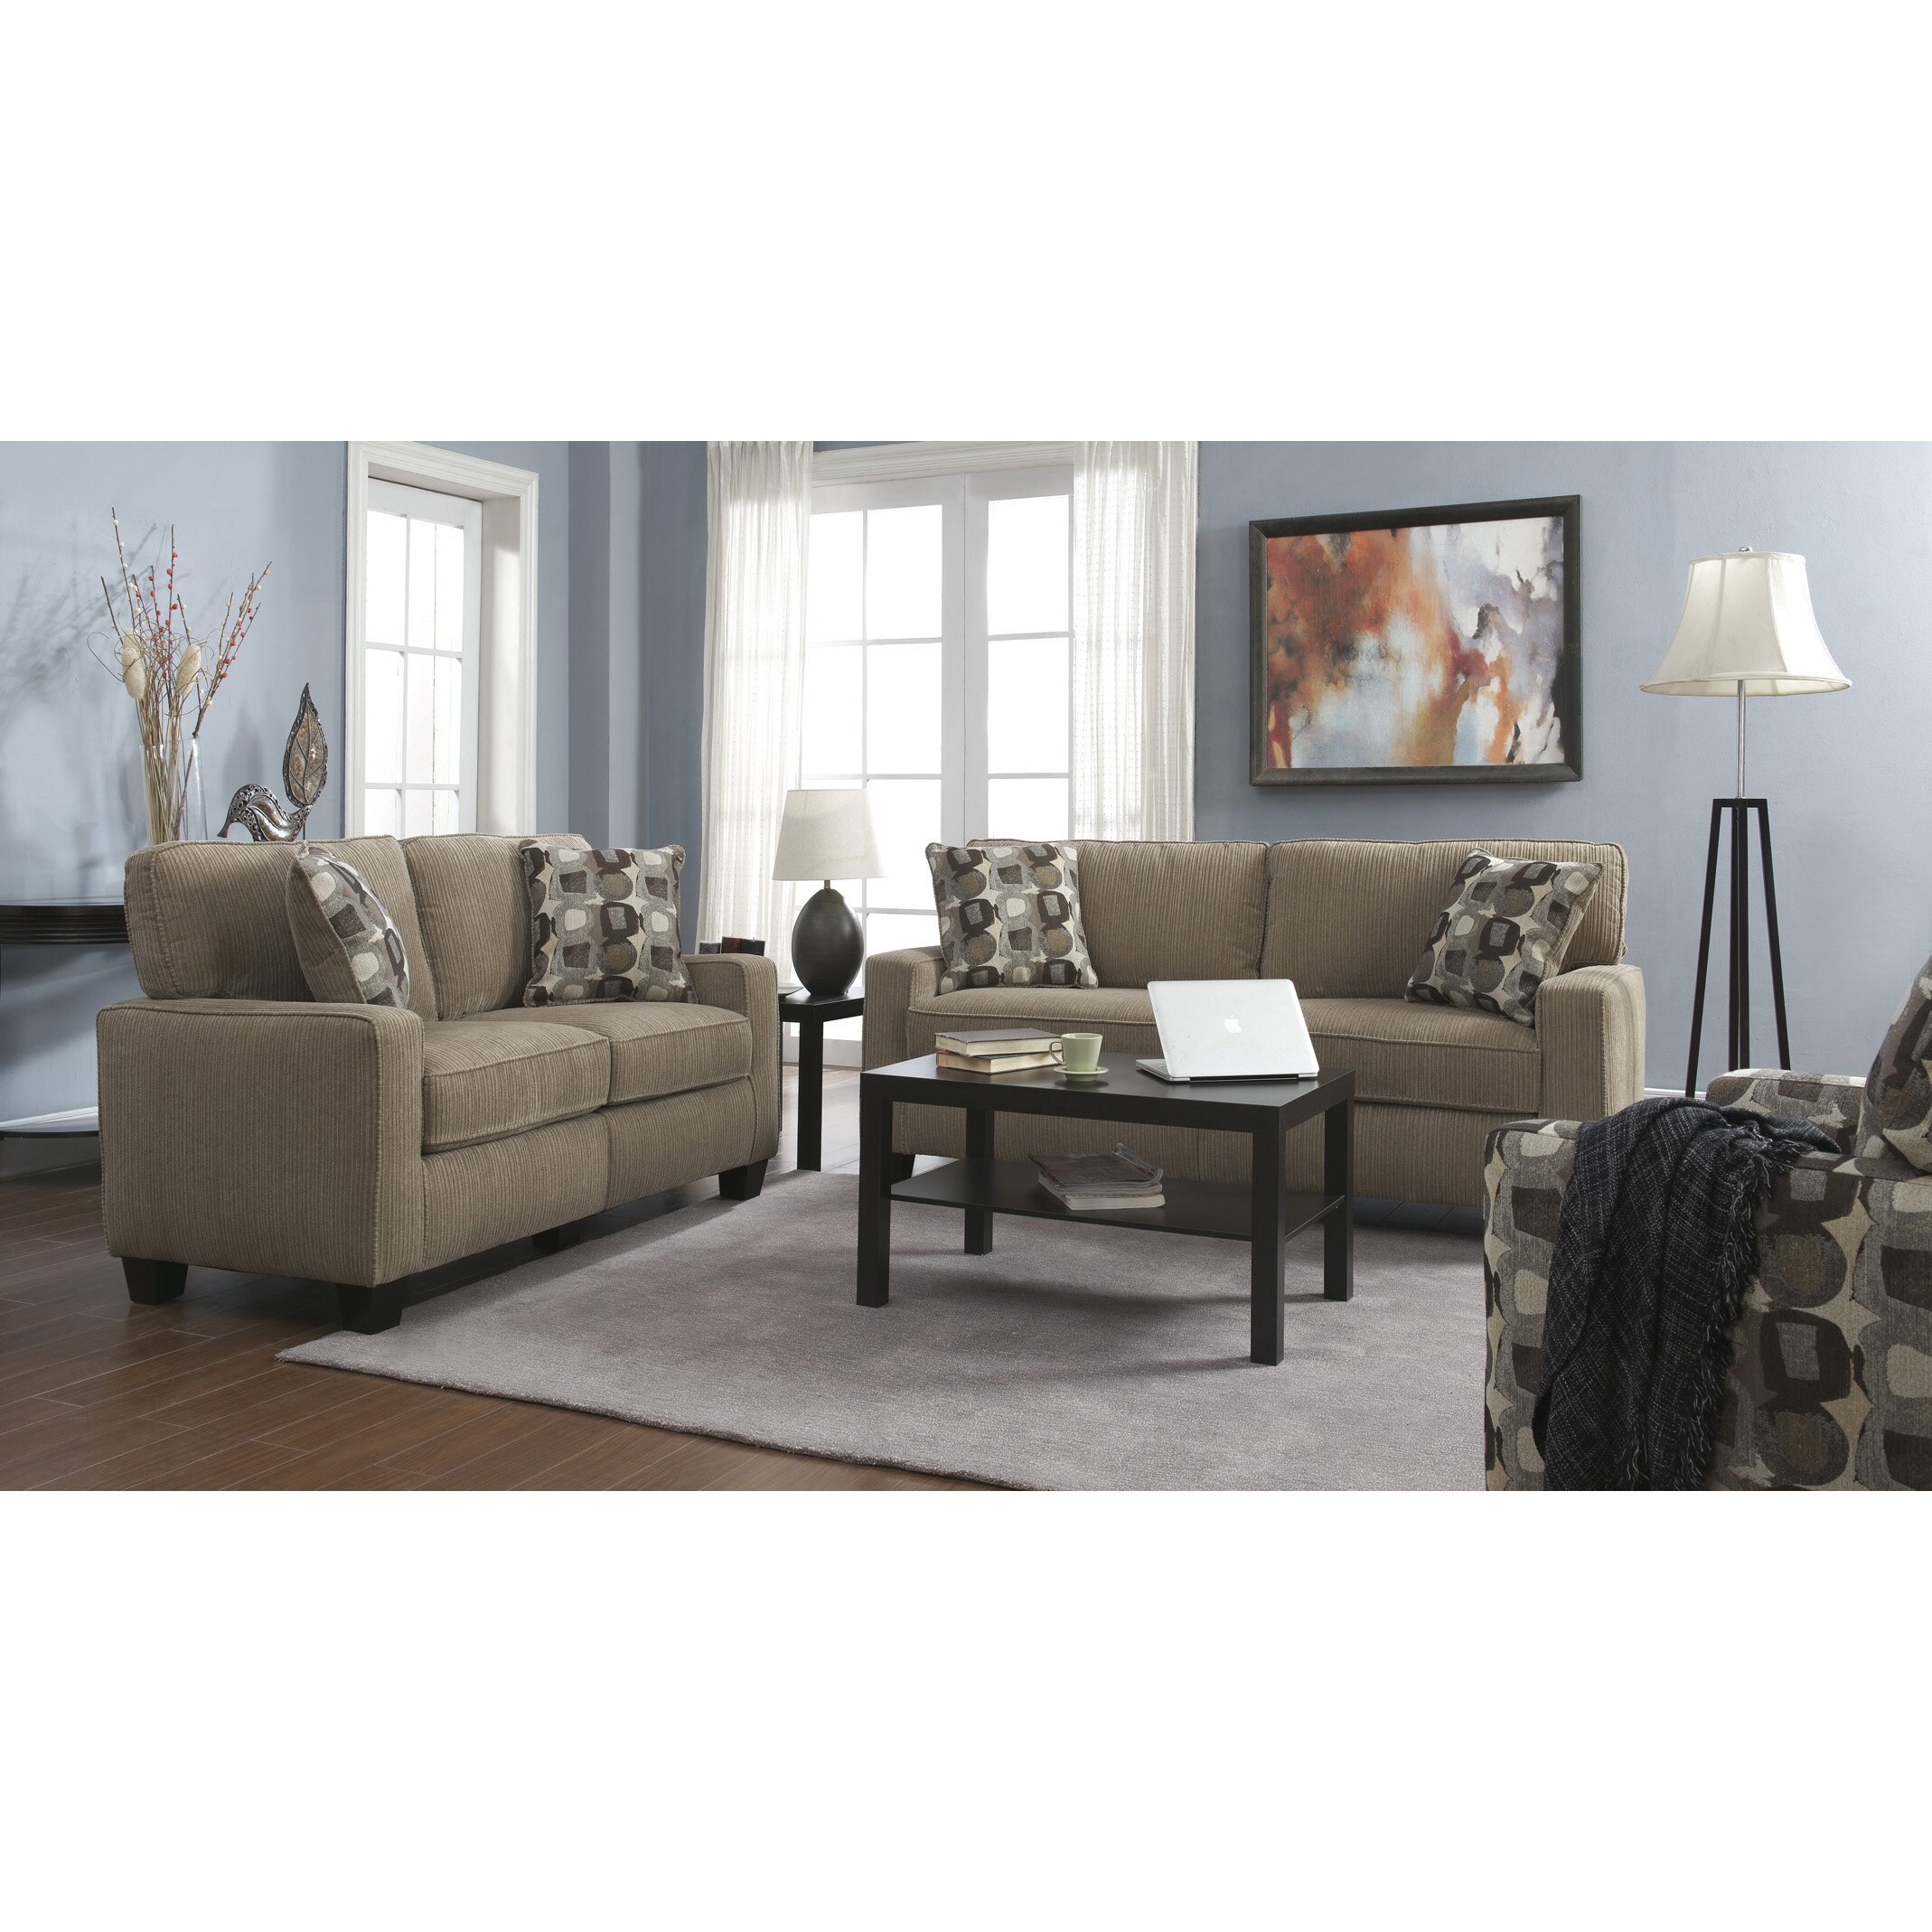 serta at home serta rta palisades 61 loveseat reviews wayfair. Black Bedroom Furniture Sets. Home Design Ideas